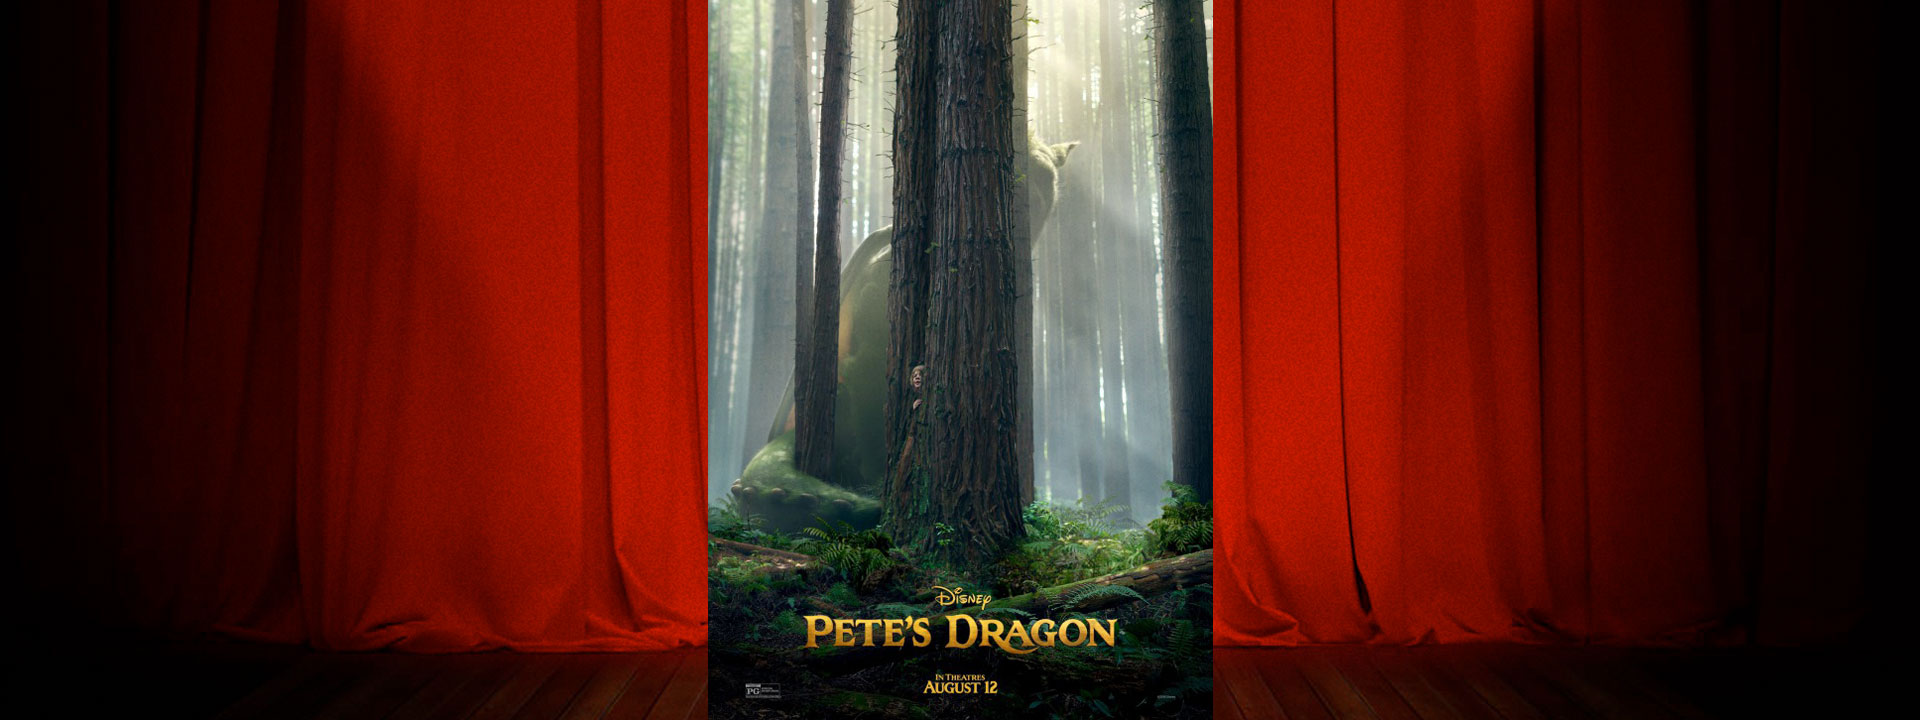 Pete's Dragon - Now Playing